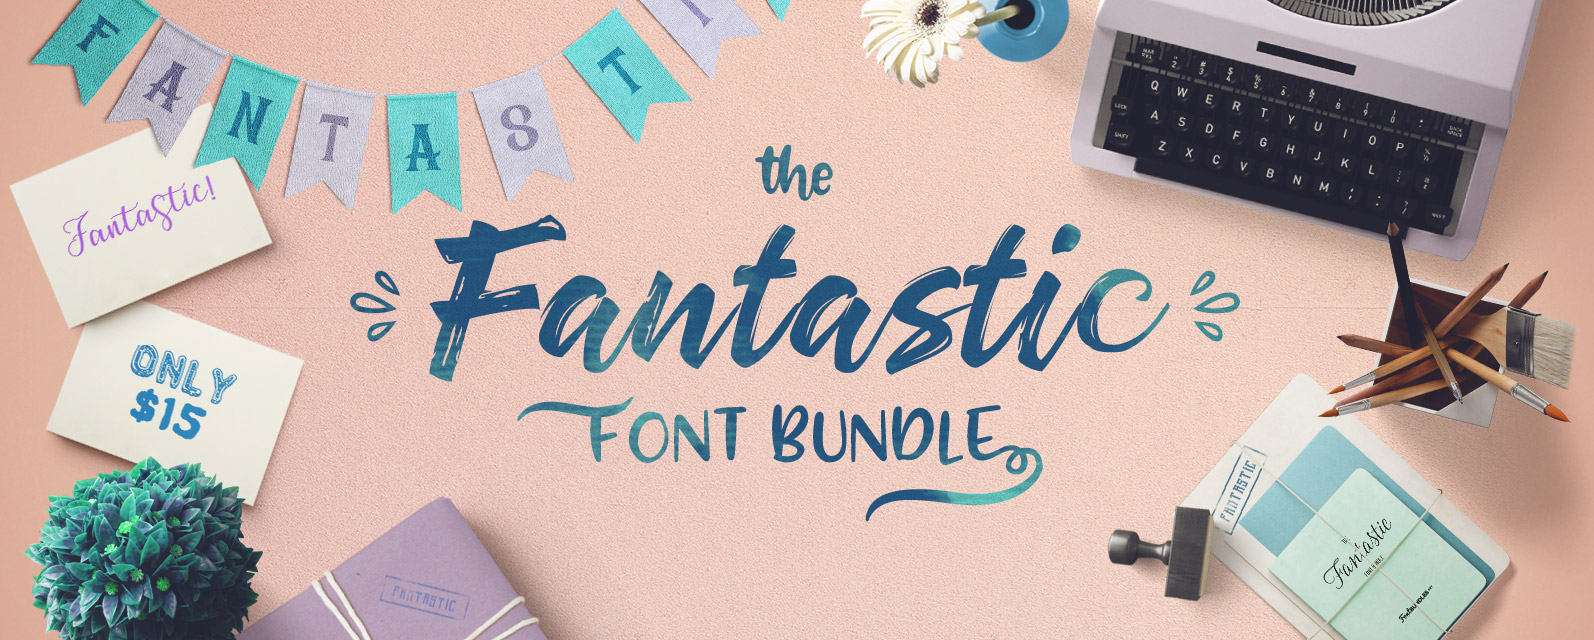 Fantastic Font Bundle Cover